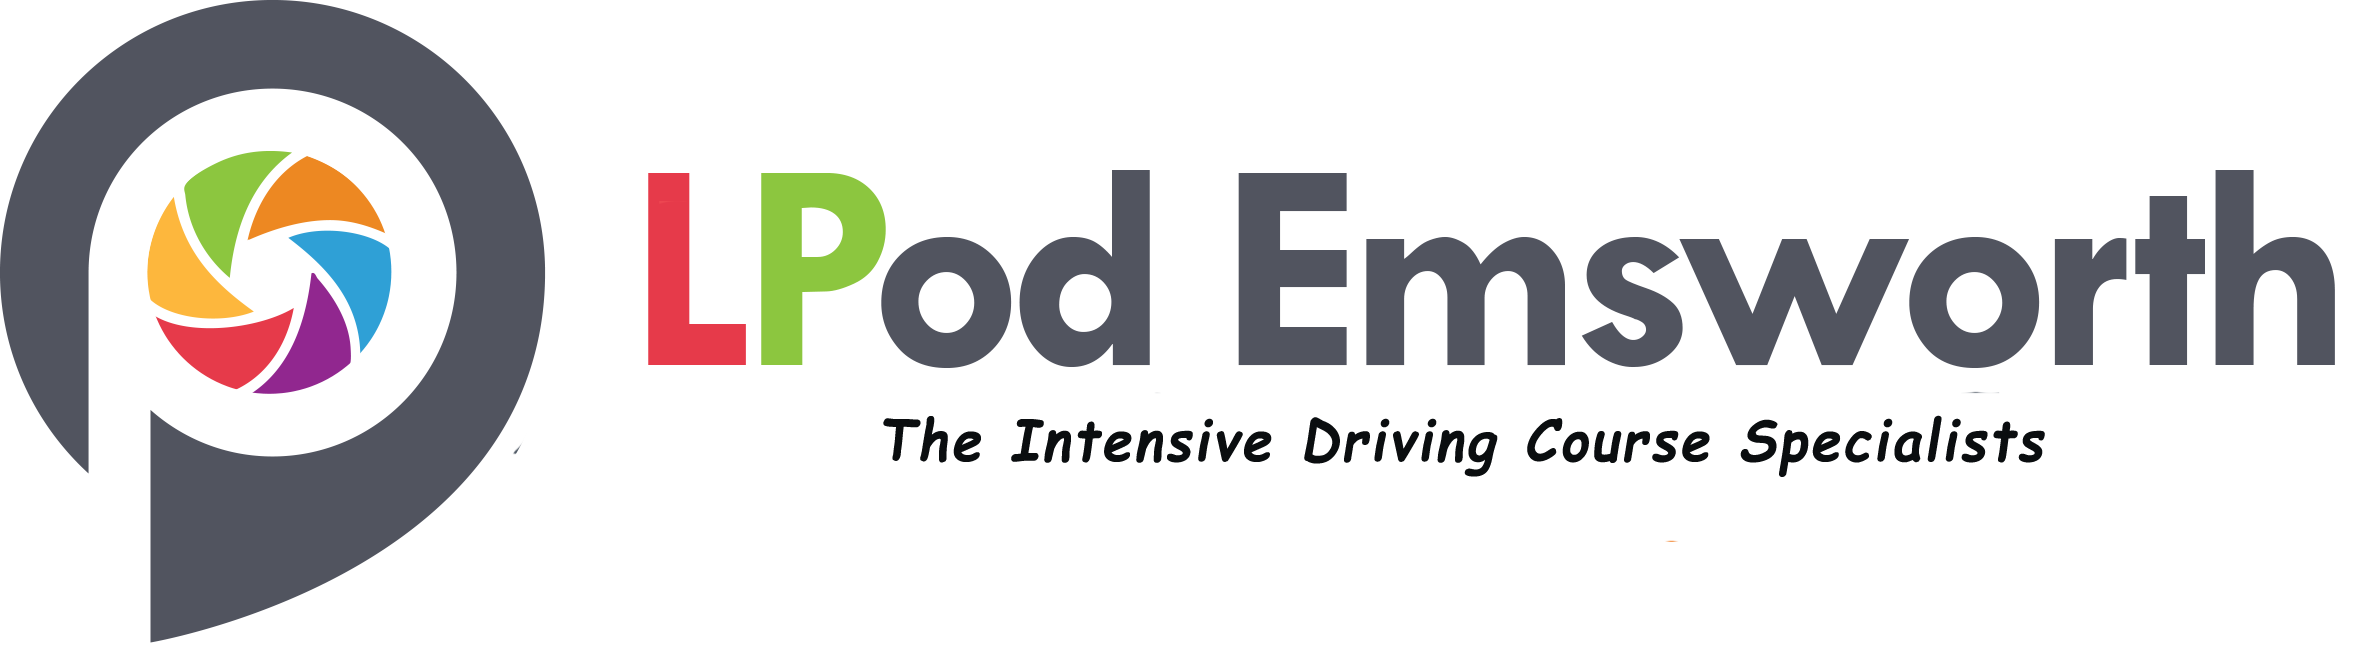 intensive driving courses Emsworth